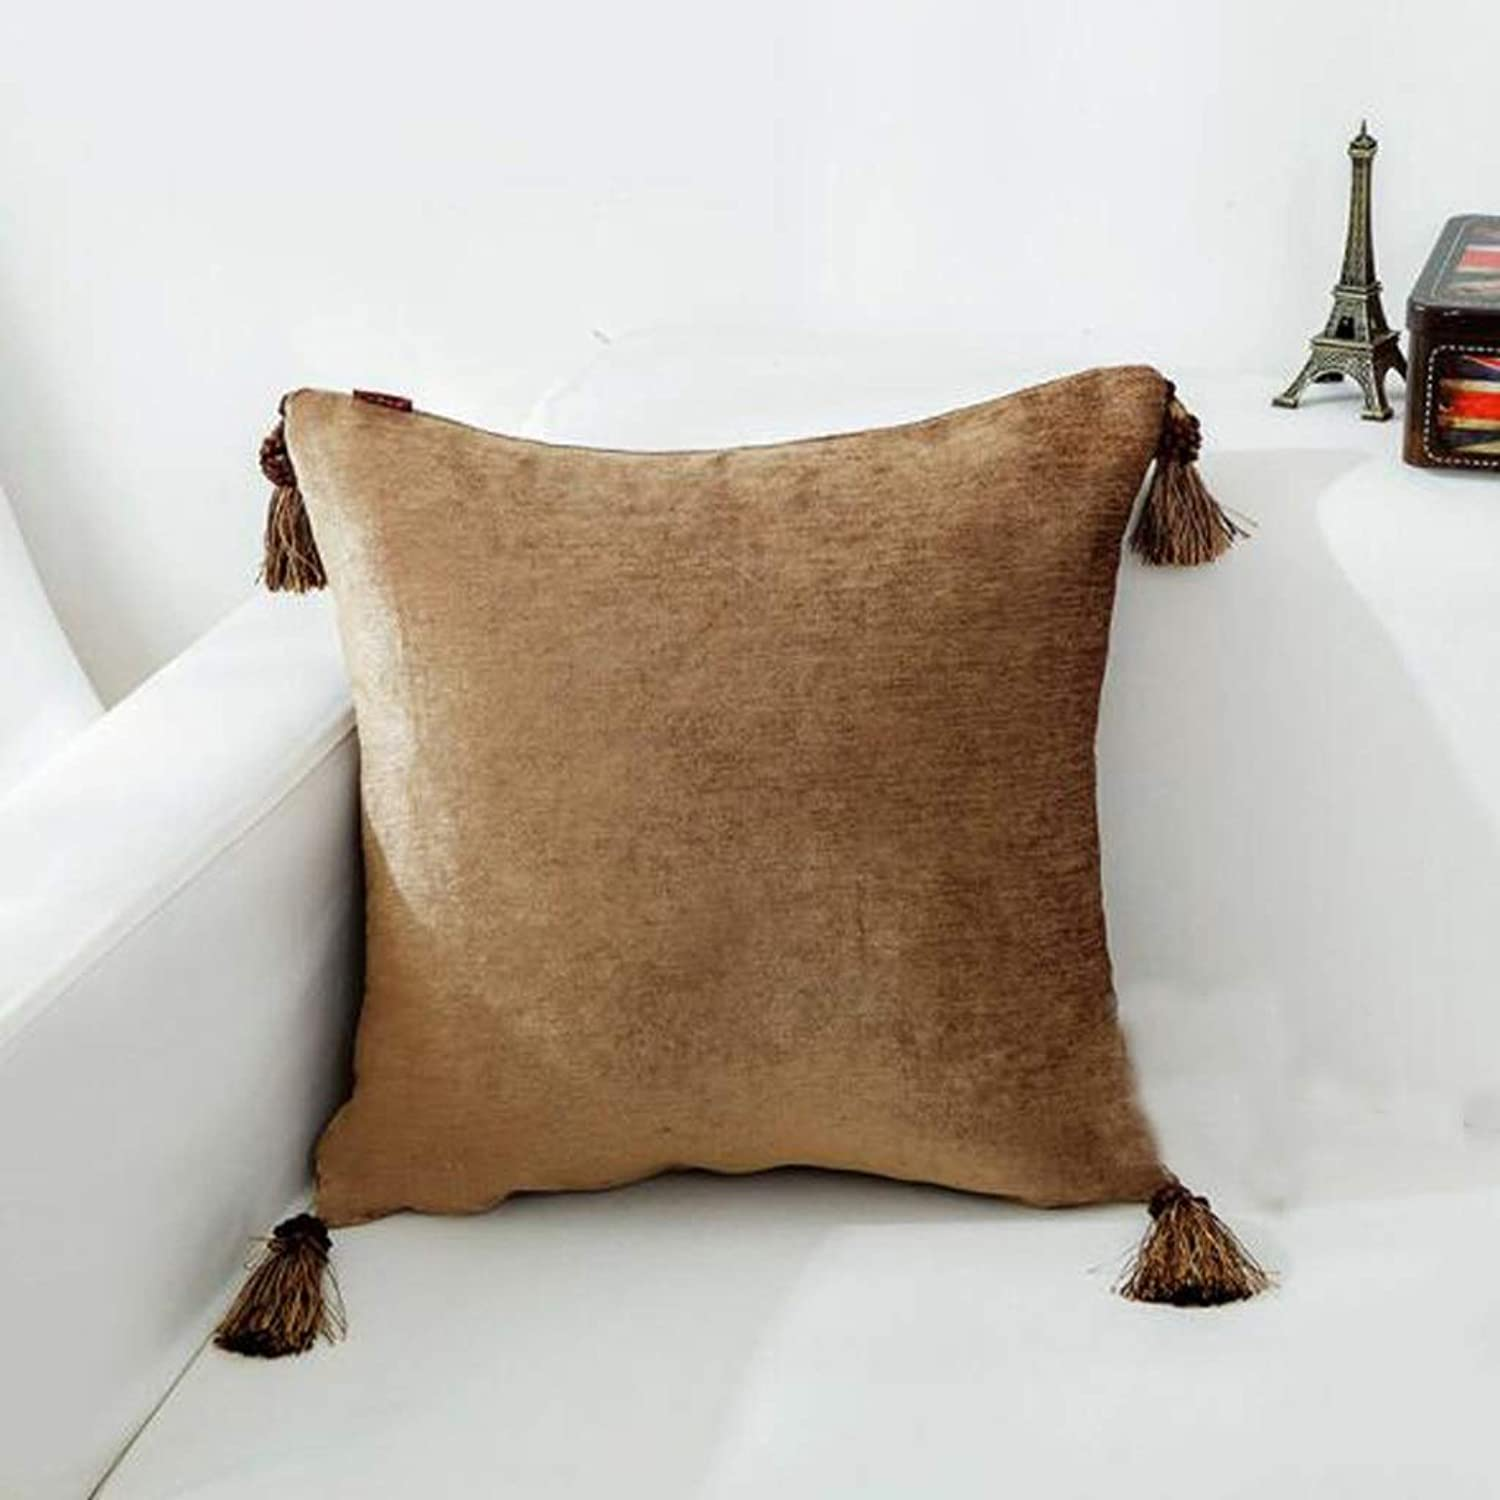 QYSZYG Pillow Solid color Sofa Cushion Tassel Pillow Living Room Square Pillowcase with Core Velvet Pillow Bed Backrest Pillow (color   F, Size   50cm50cm)